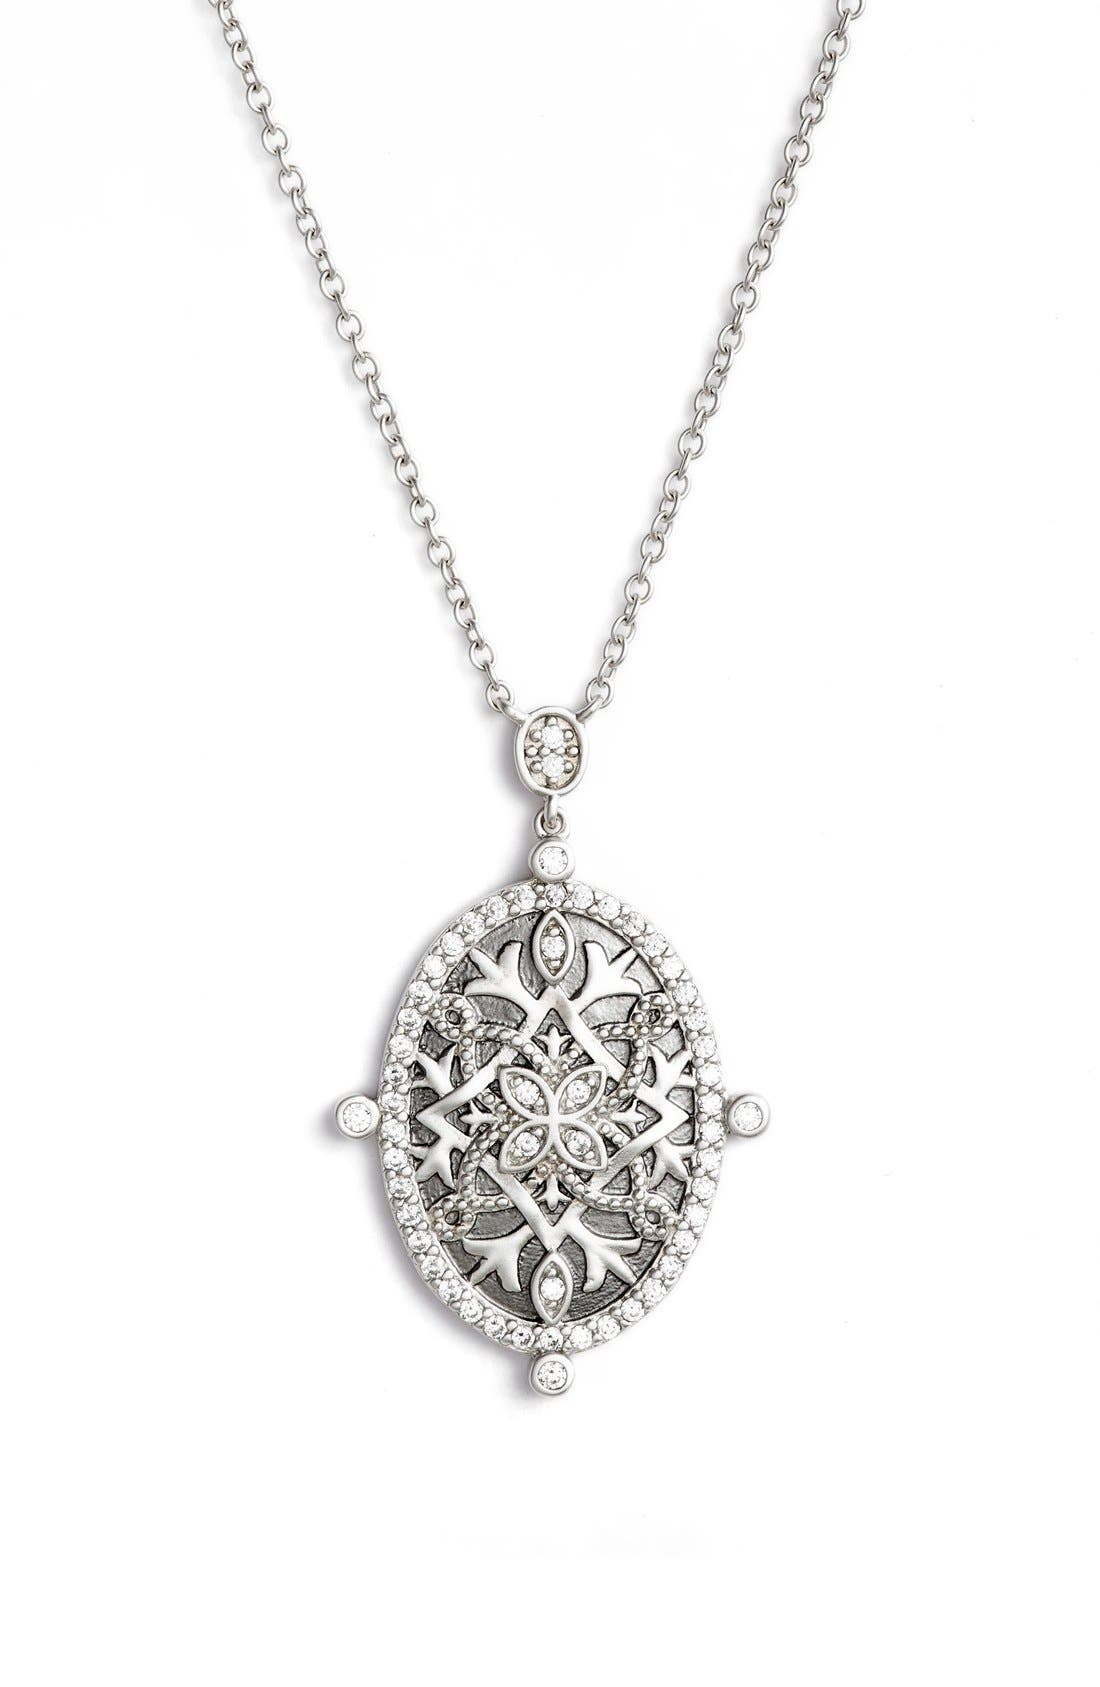 FREIDA ROTHMAN Contemporary Deco Celestial Pendant Necklace